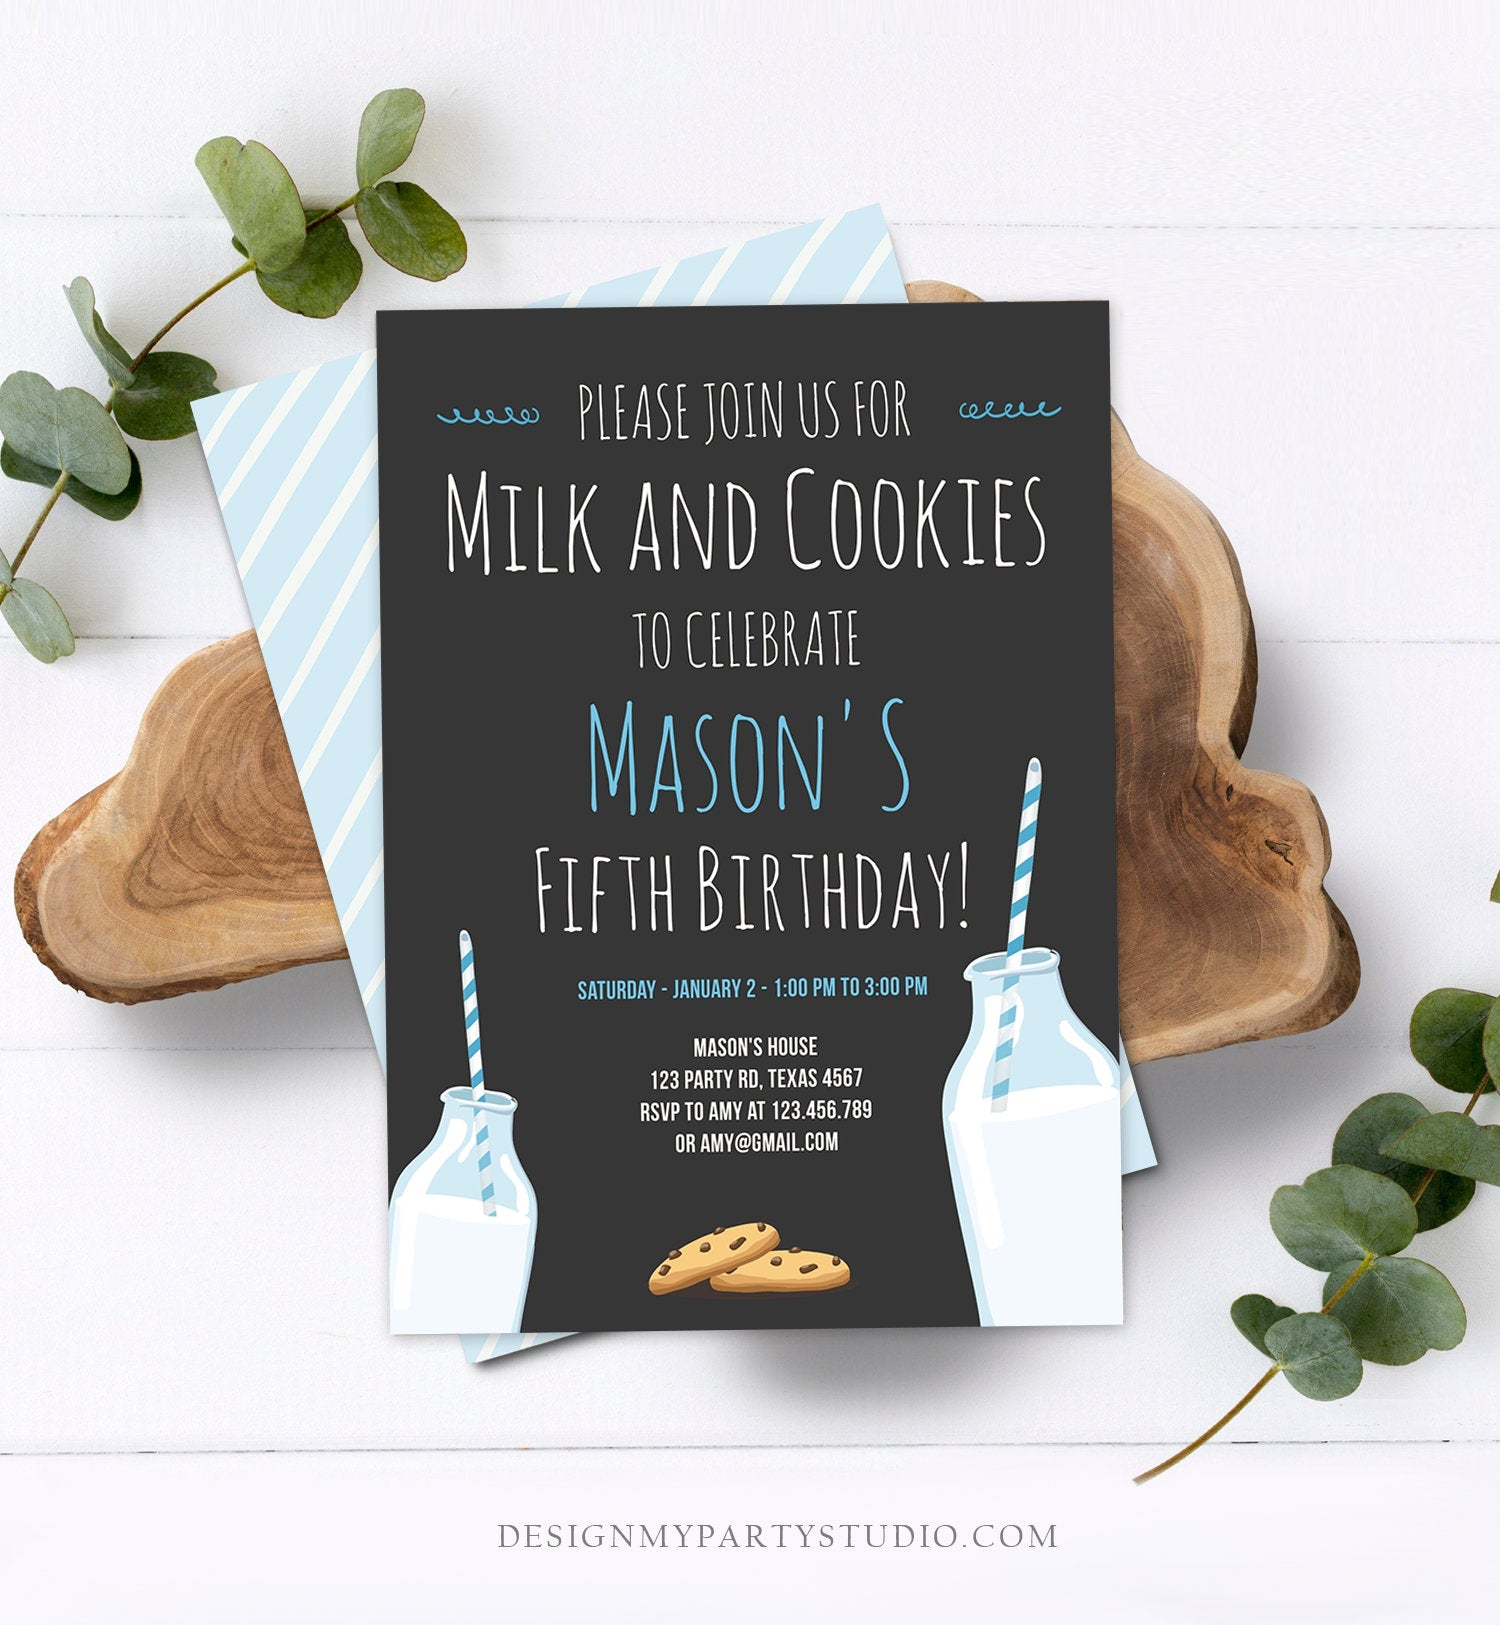 Editable Milk and Cookies Birthday Invitation Milk & Cookies Party Boy Blue Sweet Chocolate Chip Cookie Corjl Template Printable 0088